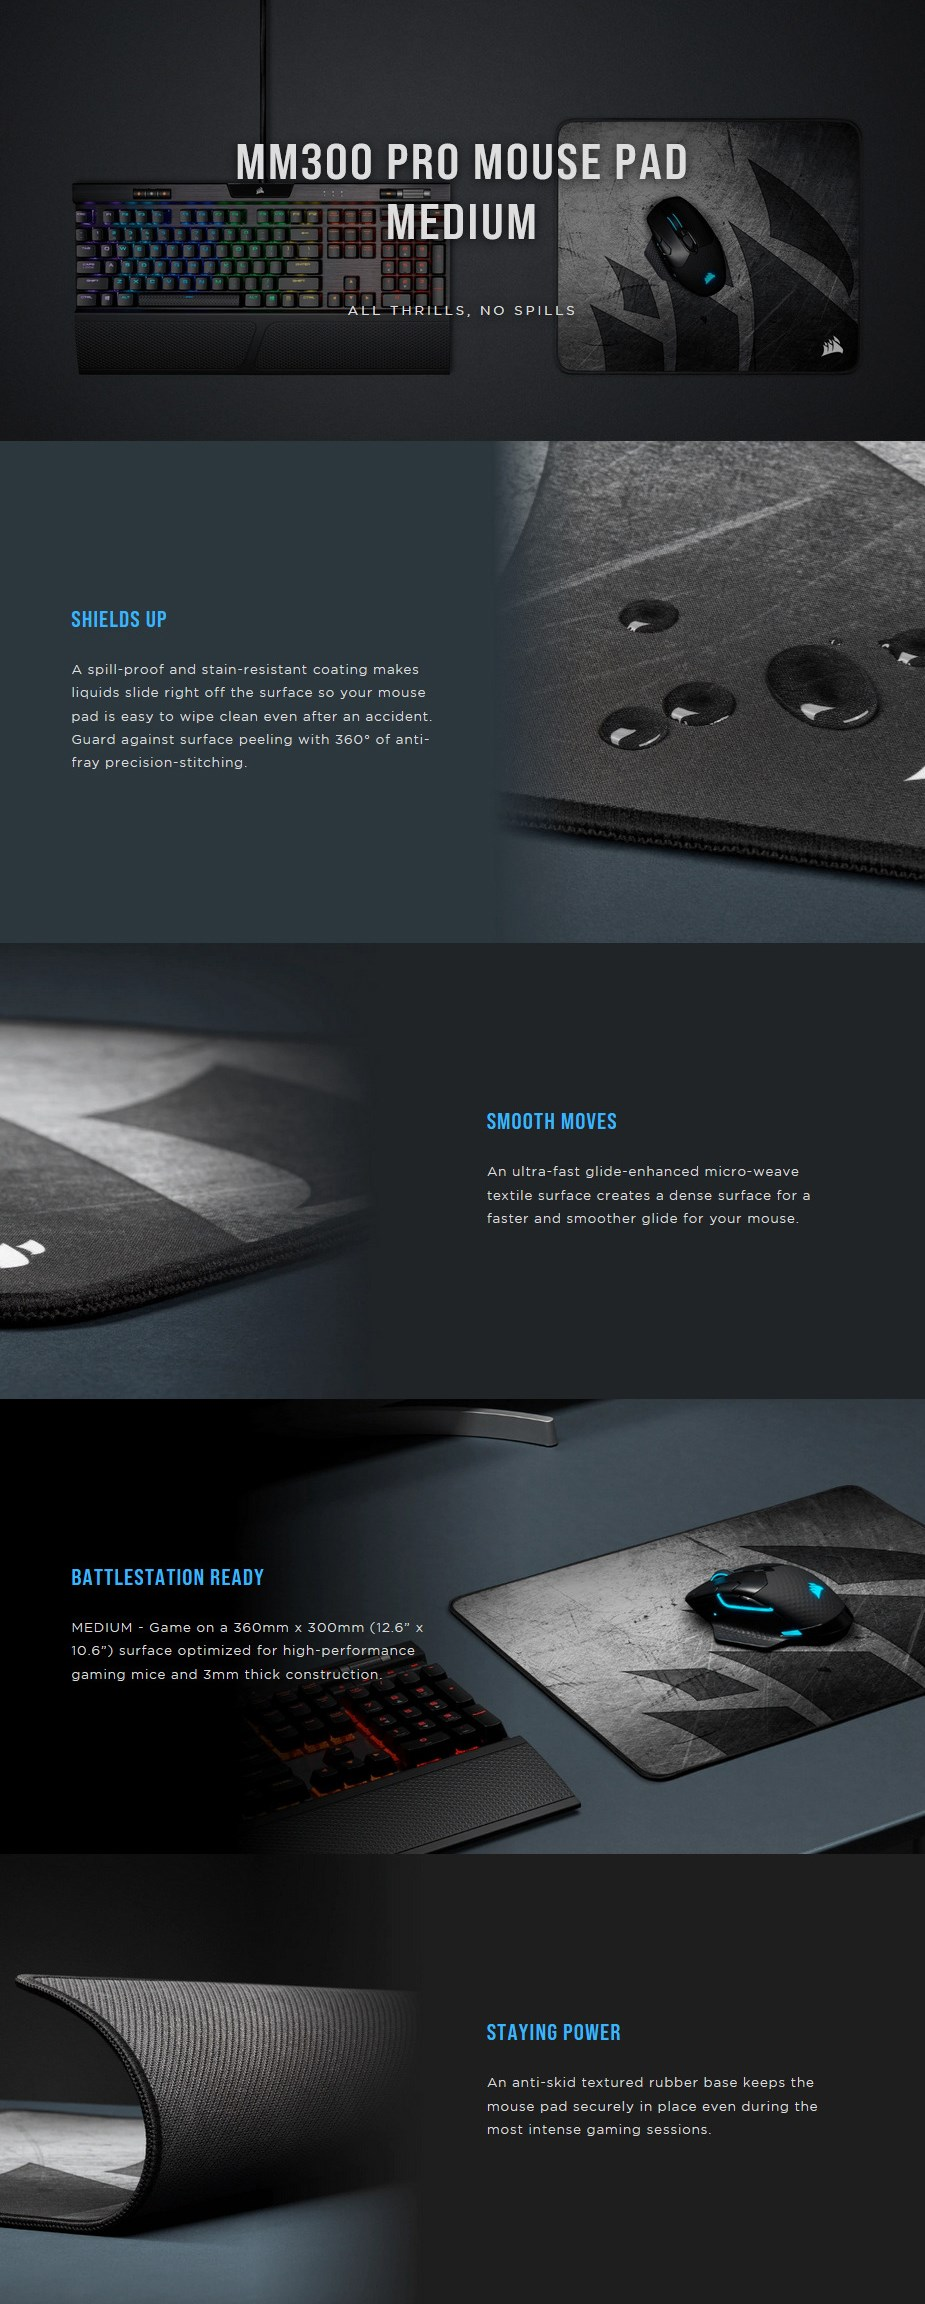 Corsair MM300 PRO Cloth Gaming Mouse Pad - Medium - Overview 1